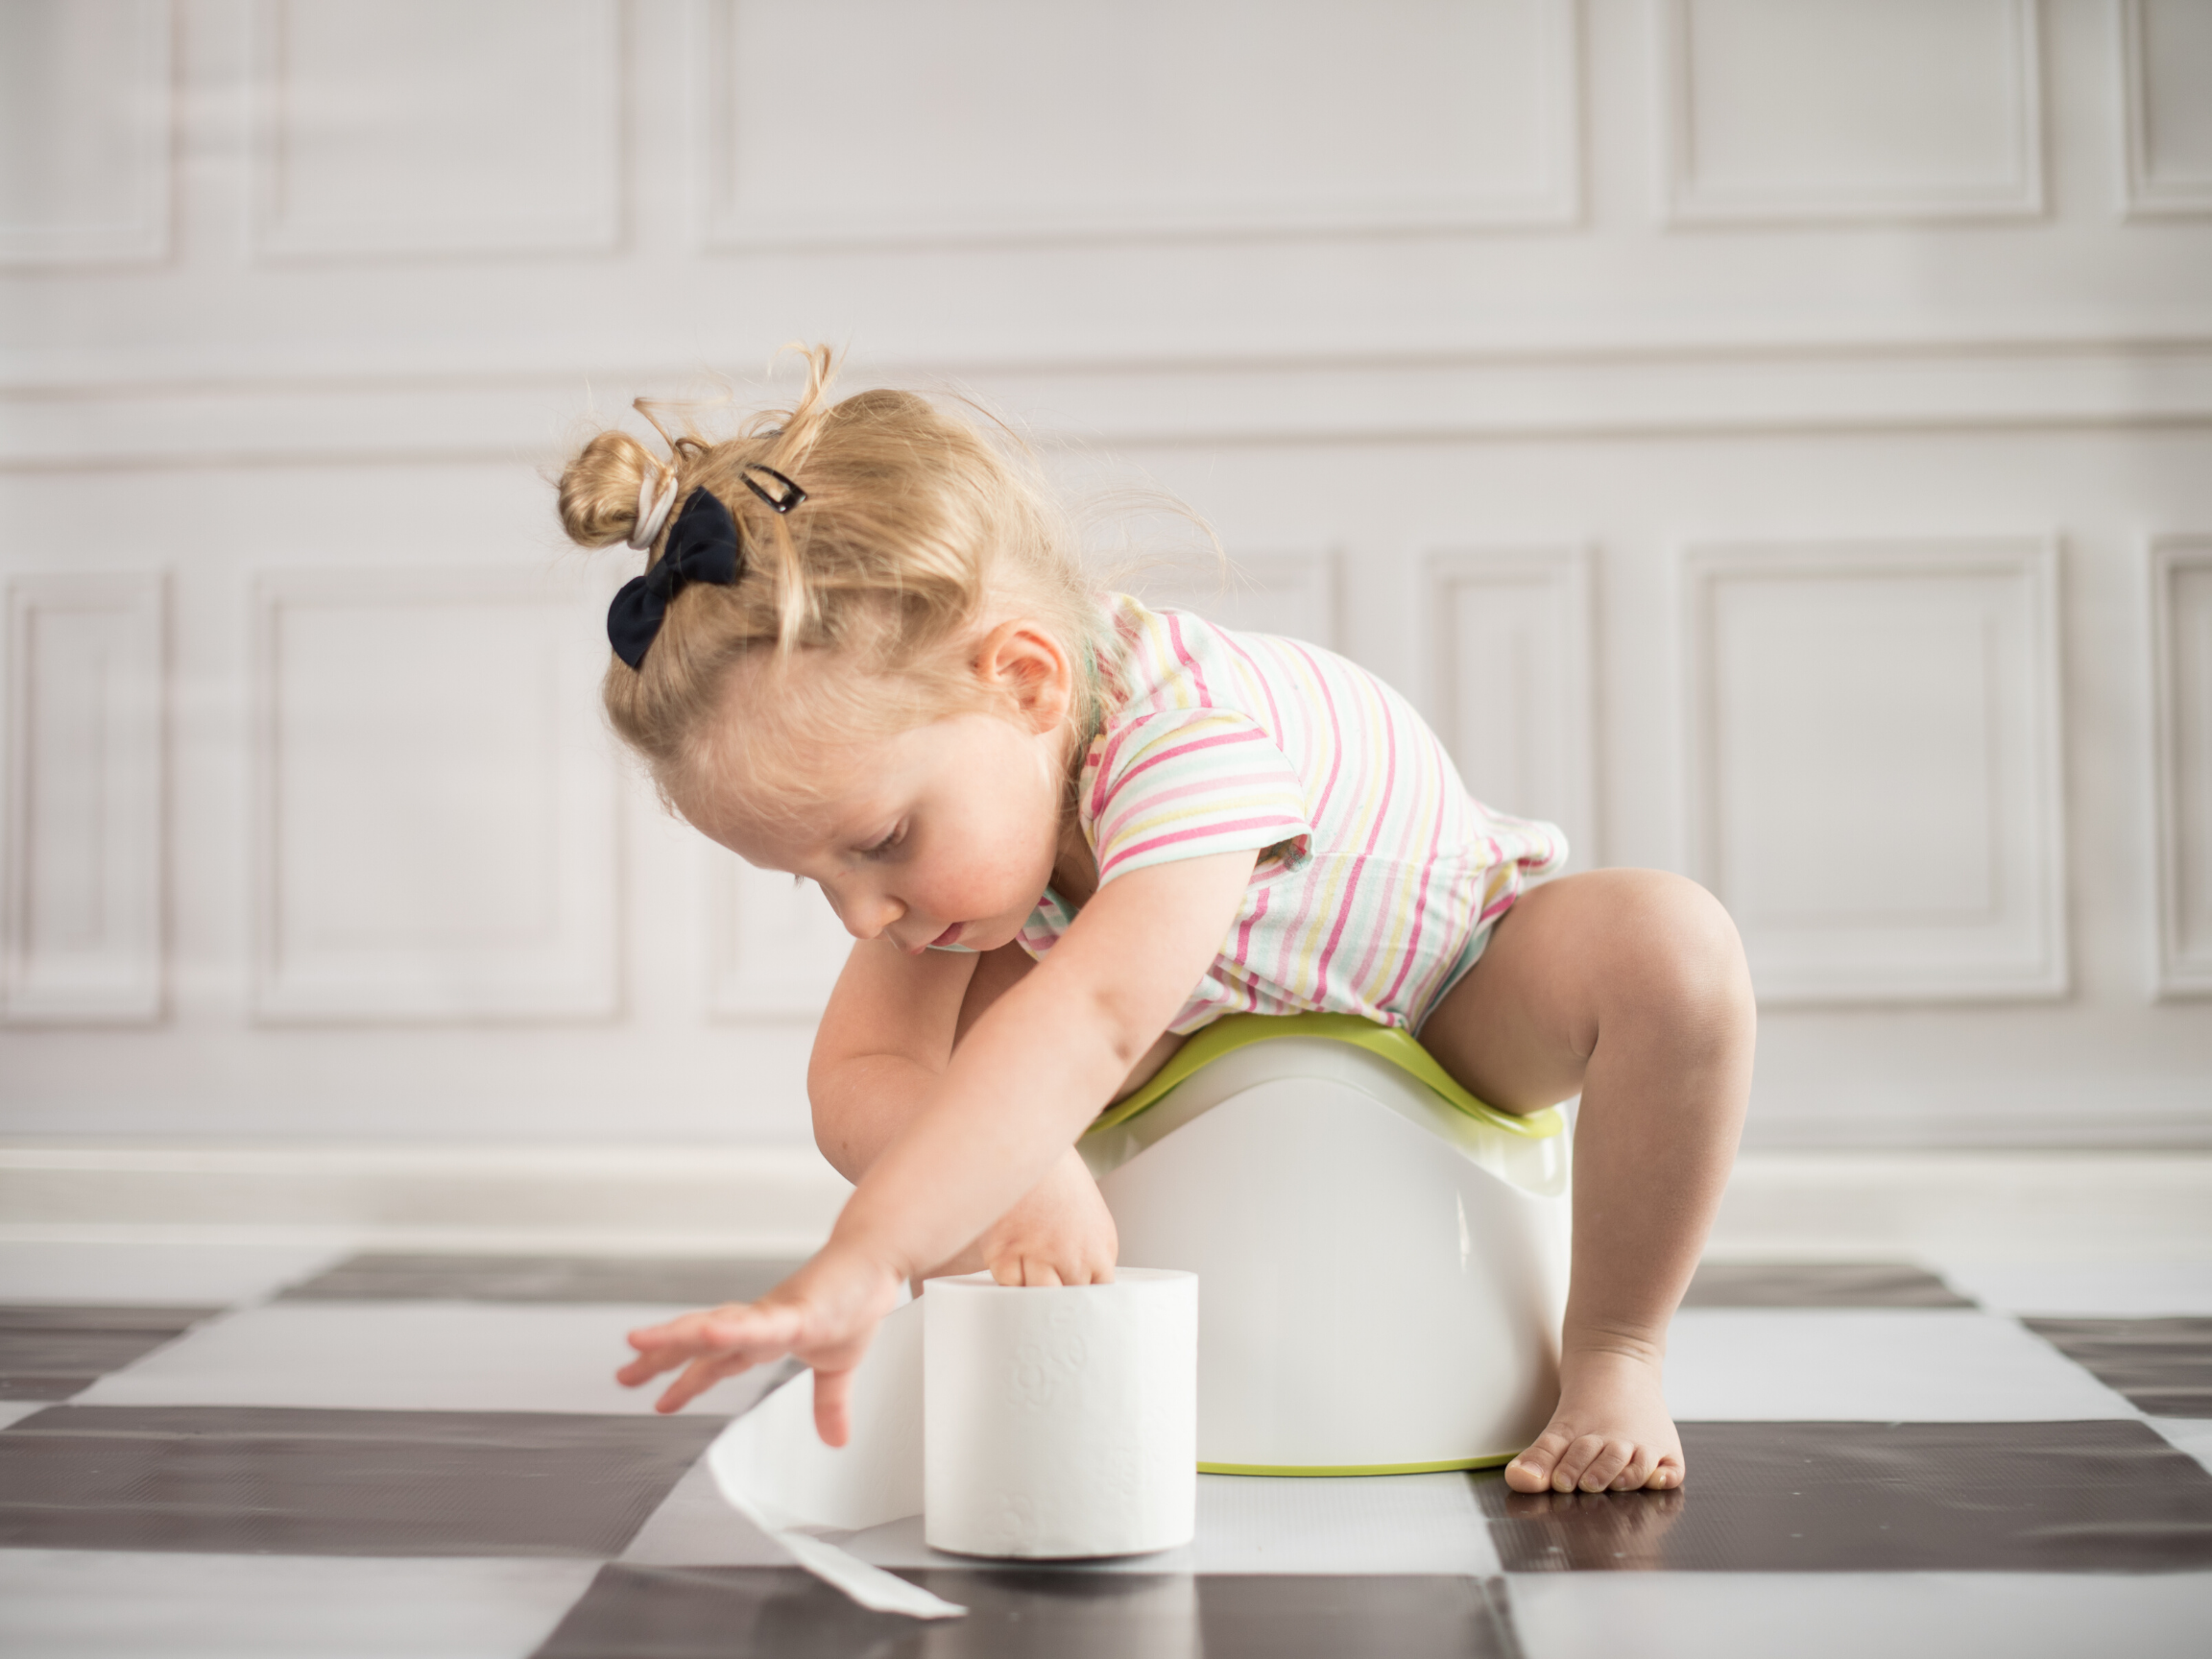 Toddler sitting on a potty and reaching for toilet paper